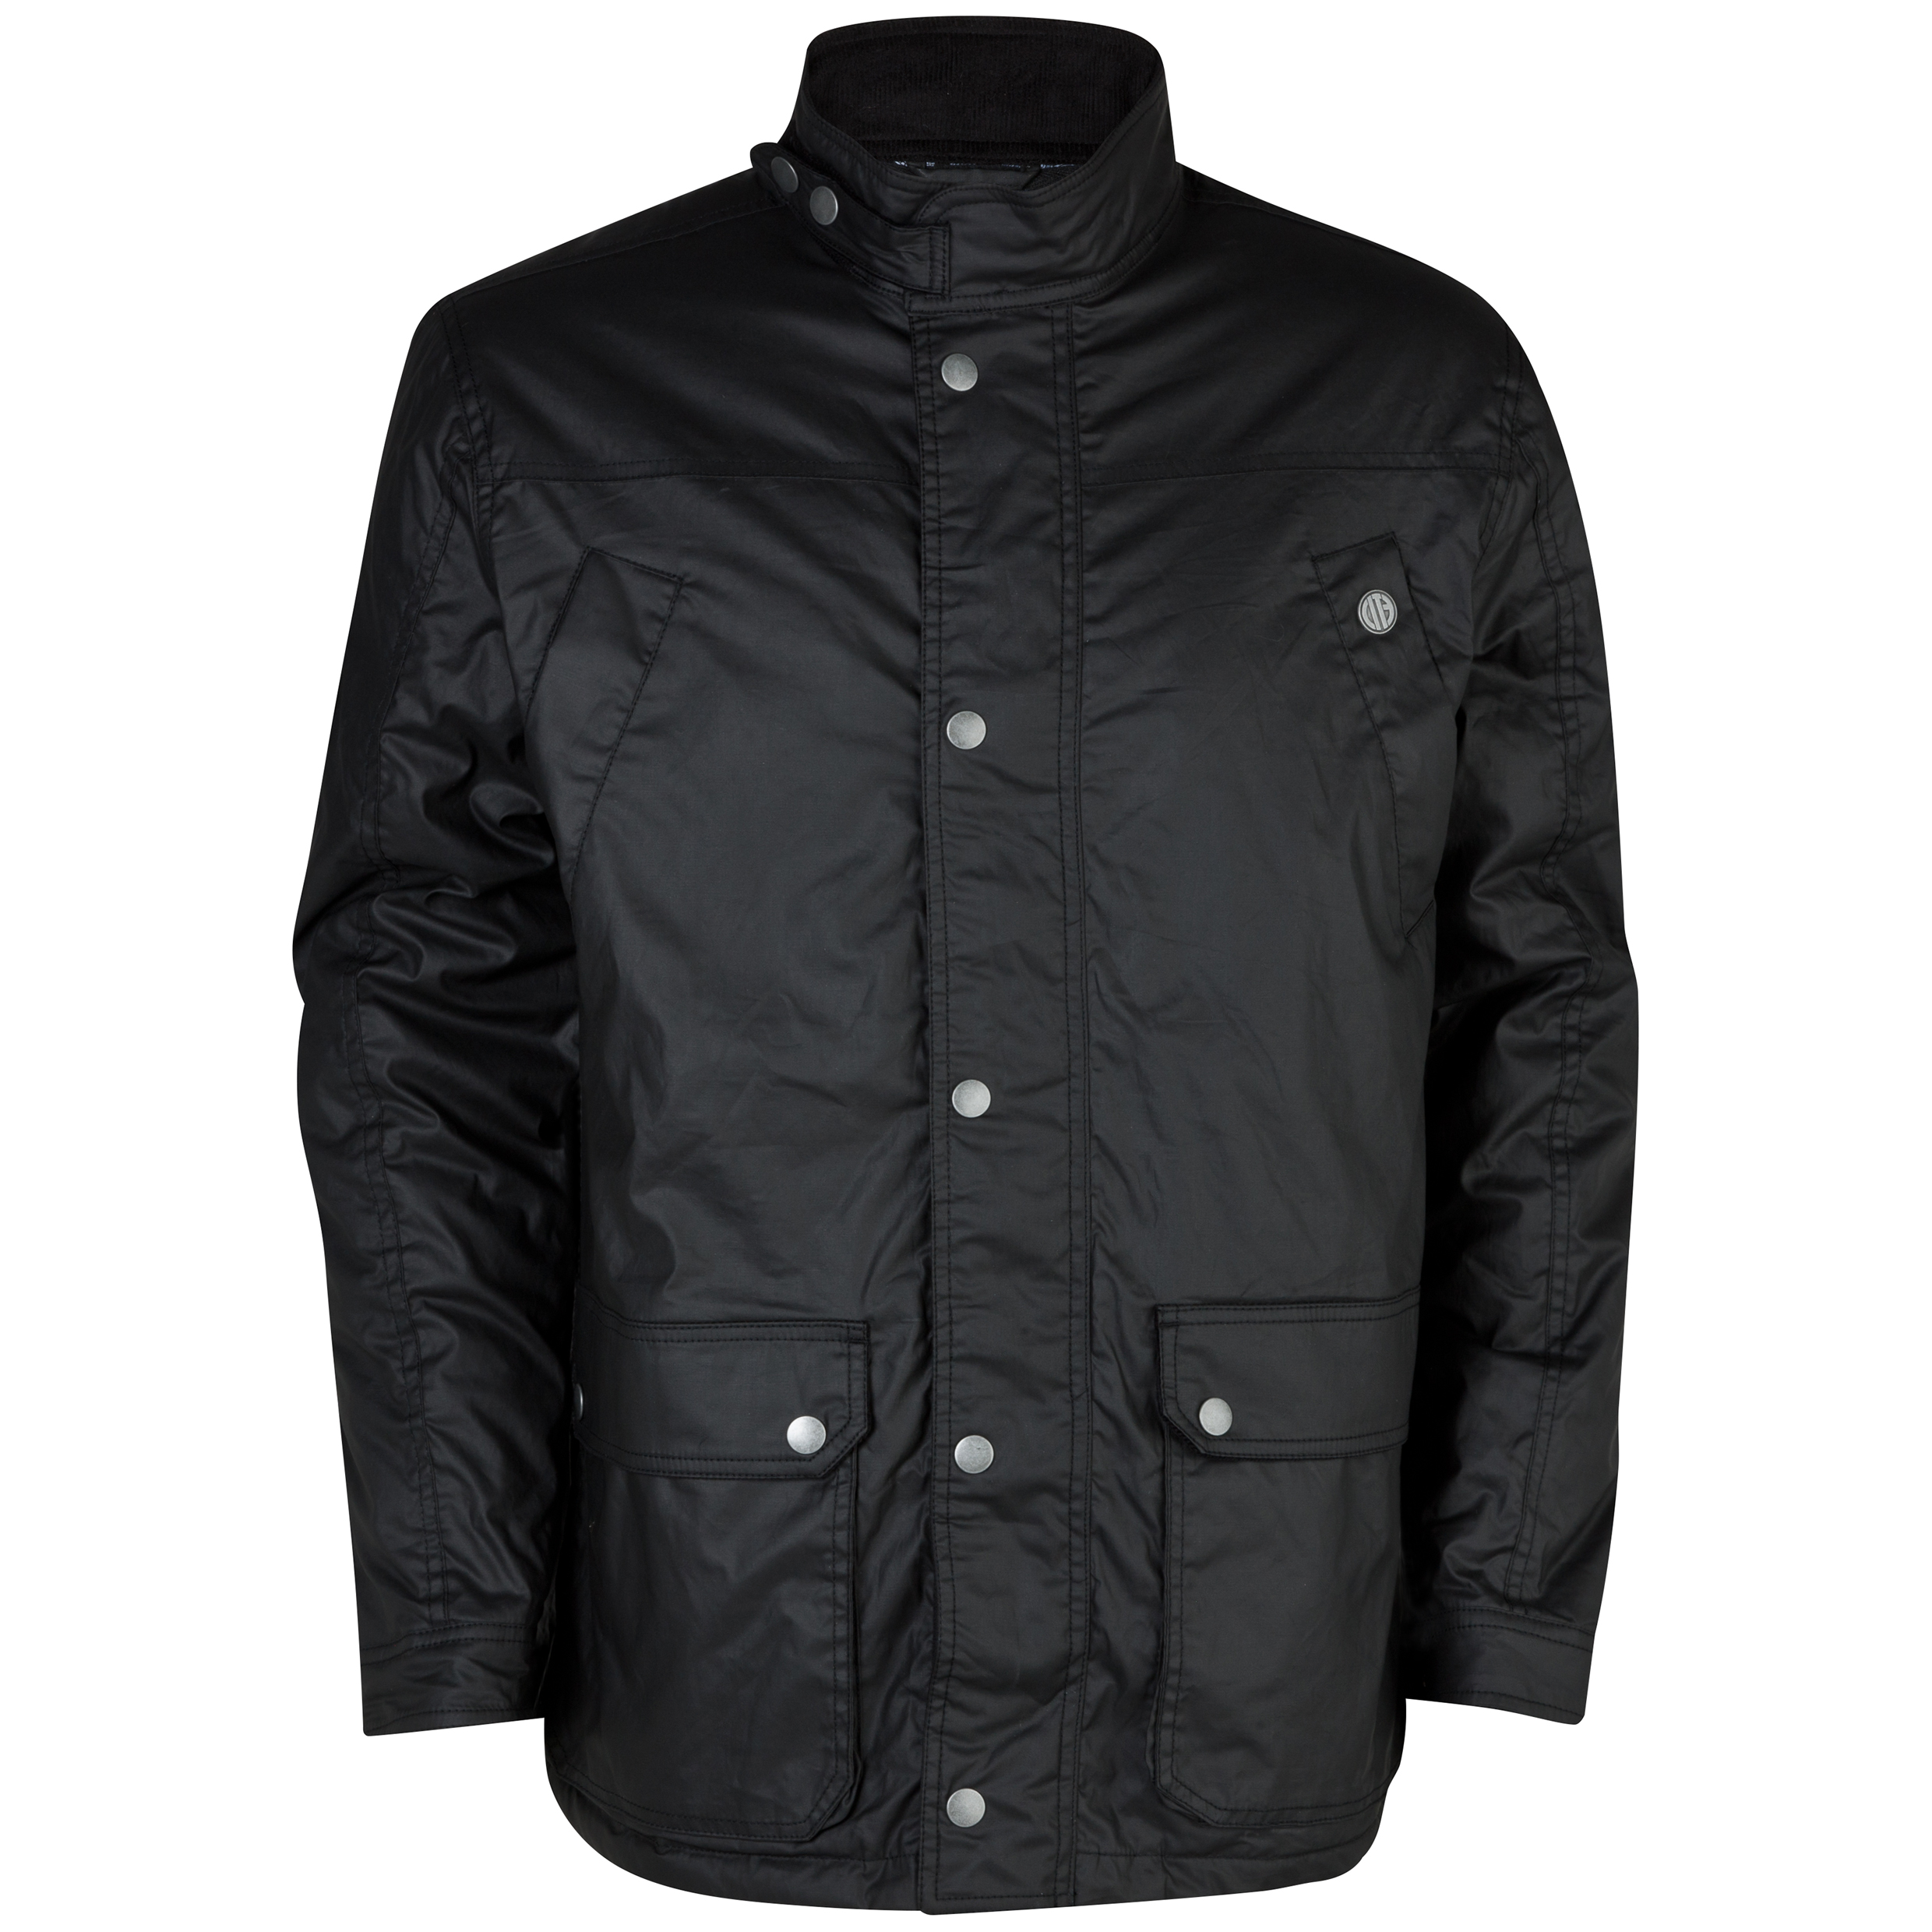 Manchester City Jura Wax jacket - Mens Black